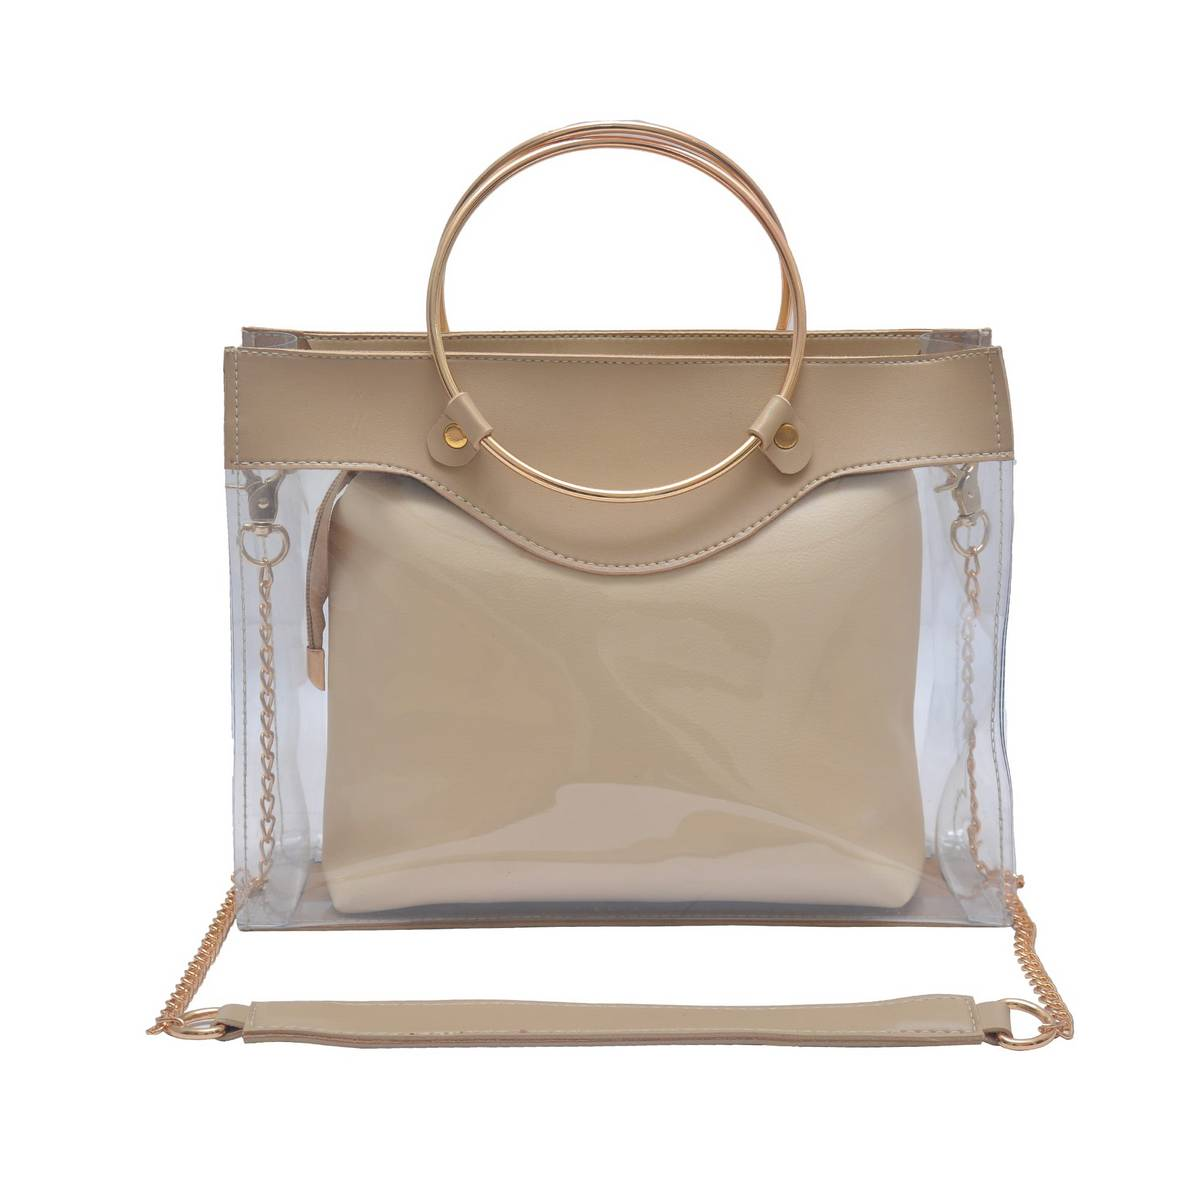 Astore Transparent Beige Faux Leather Fix Gold Chain Acrylic Bag with Inside Vanity Party ShoulderBag and Handbag